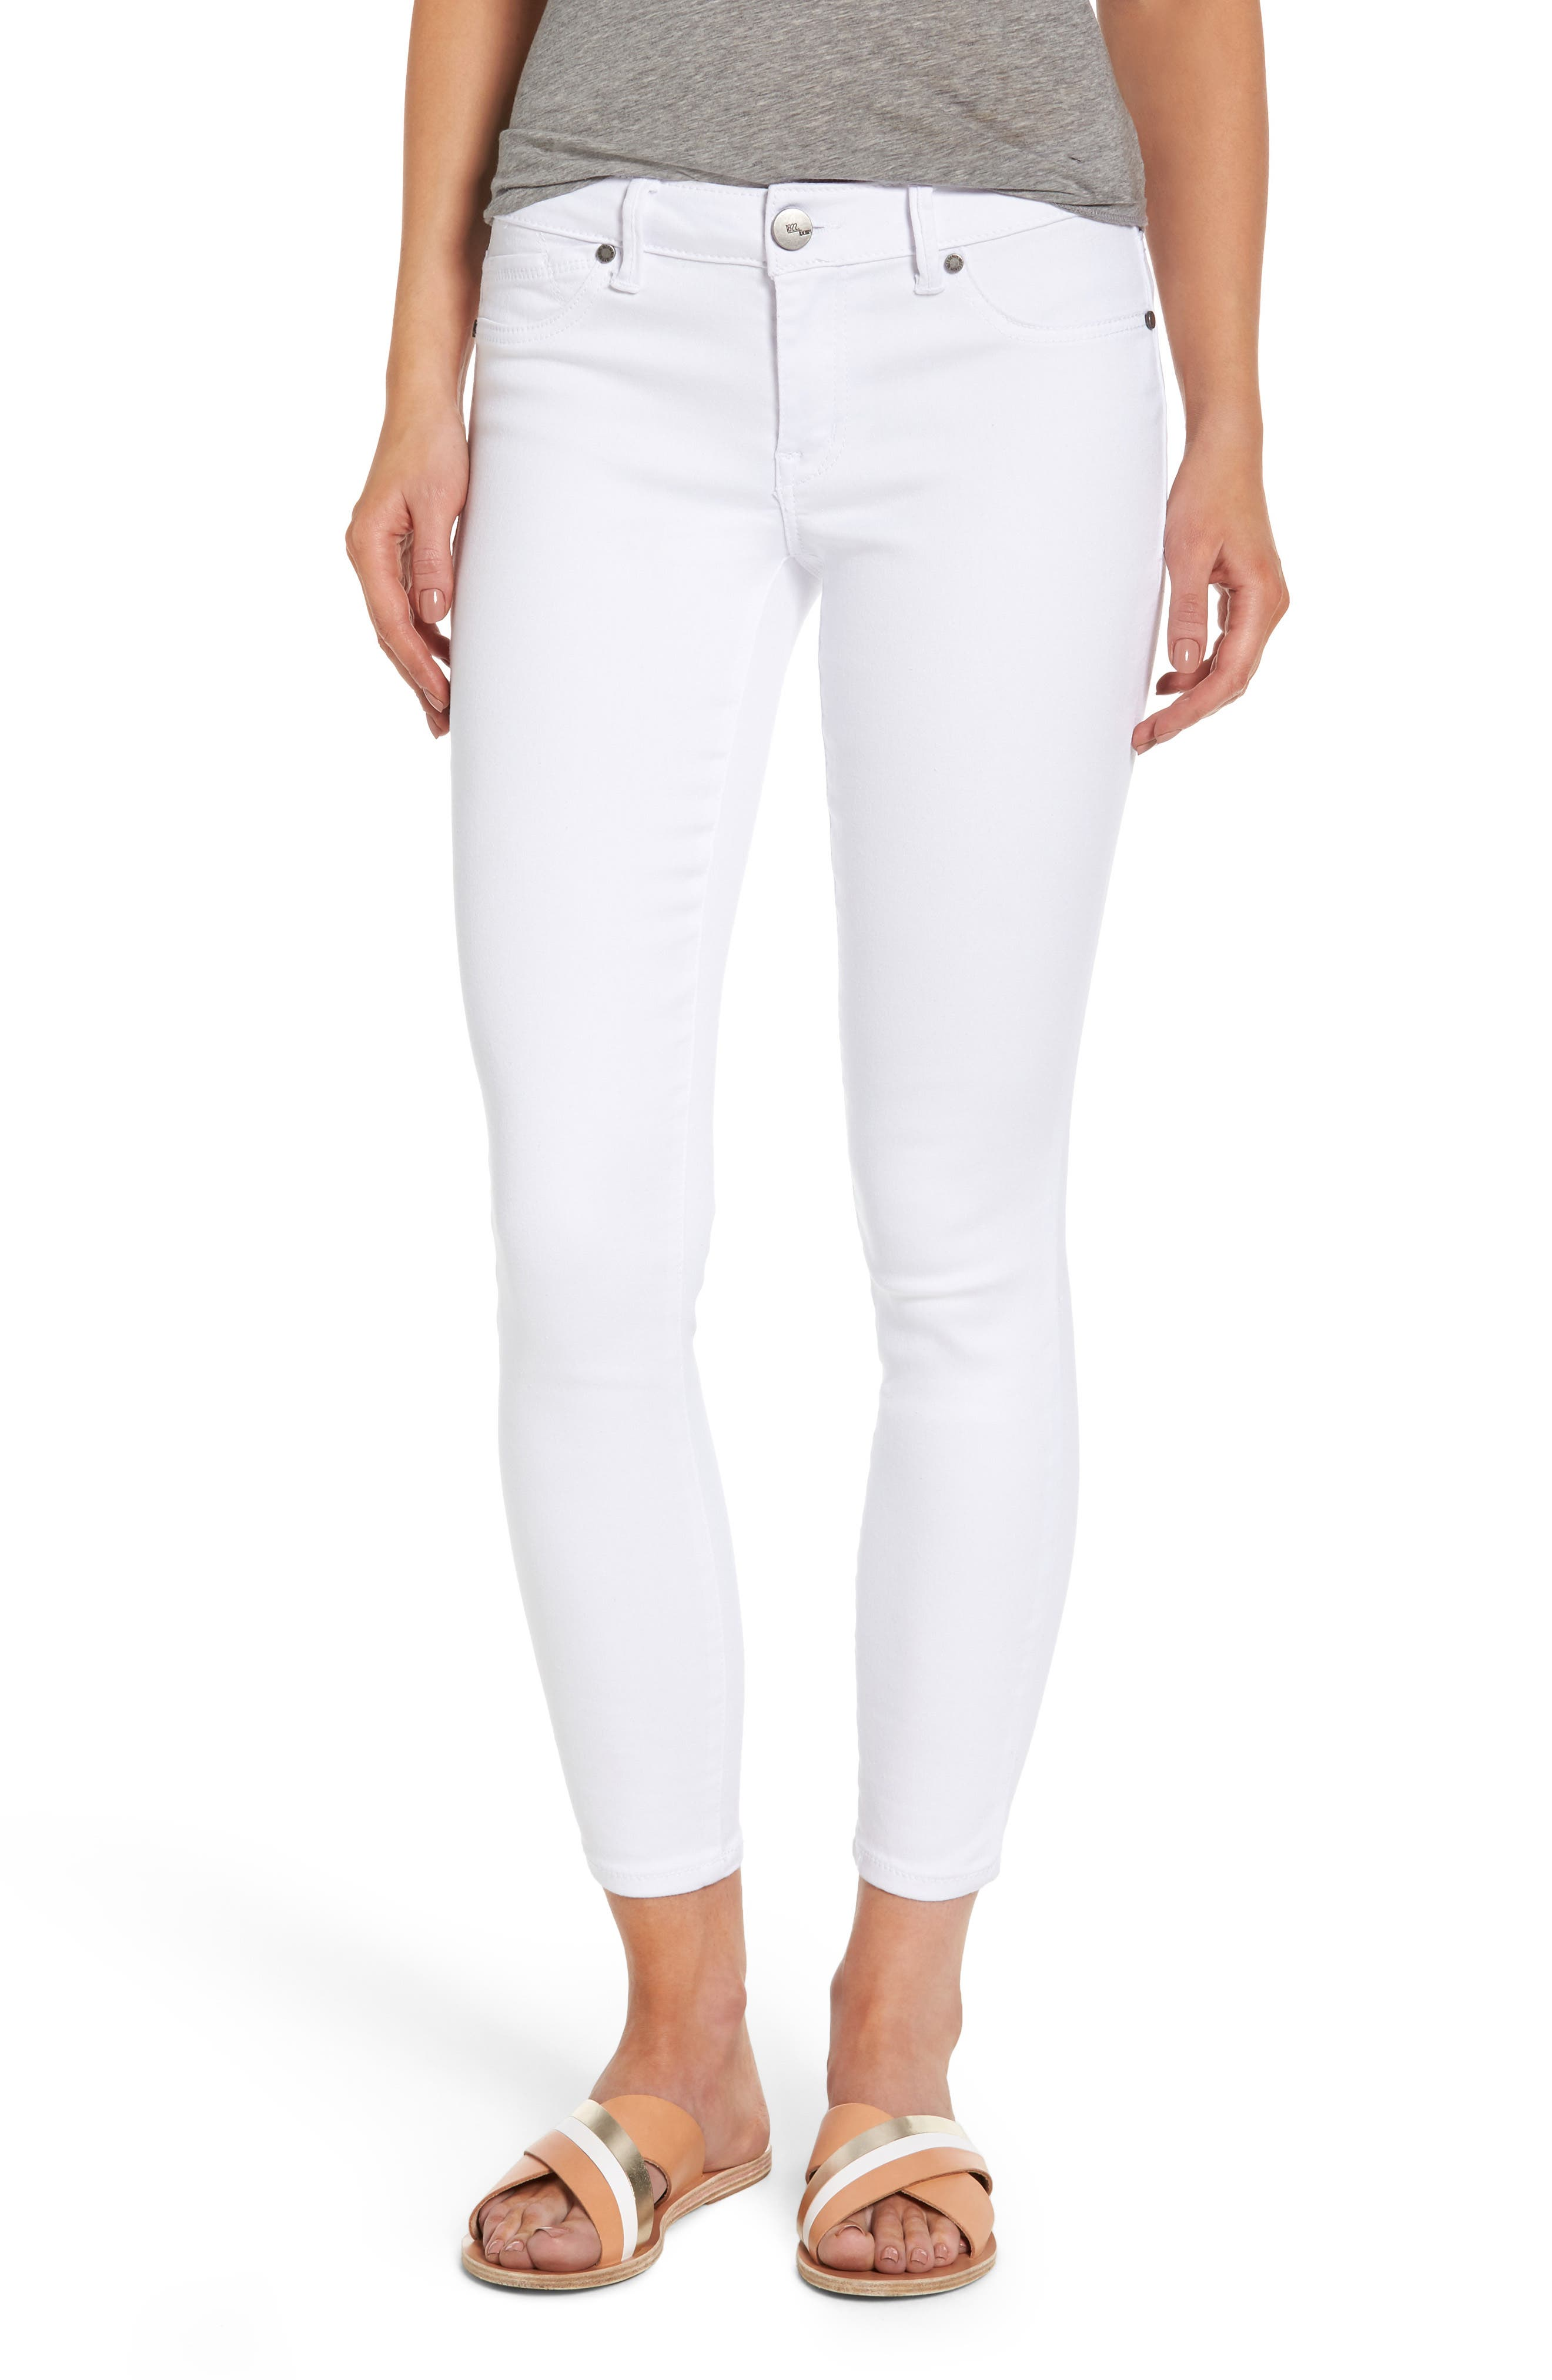 1822 Butter Skinny Jeans,                             Main thumbnail 1, color,                             Wht